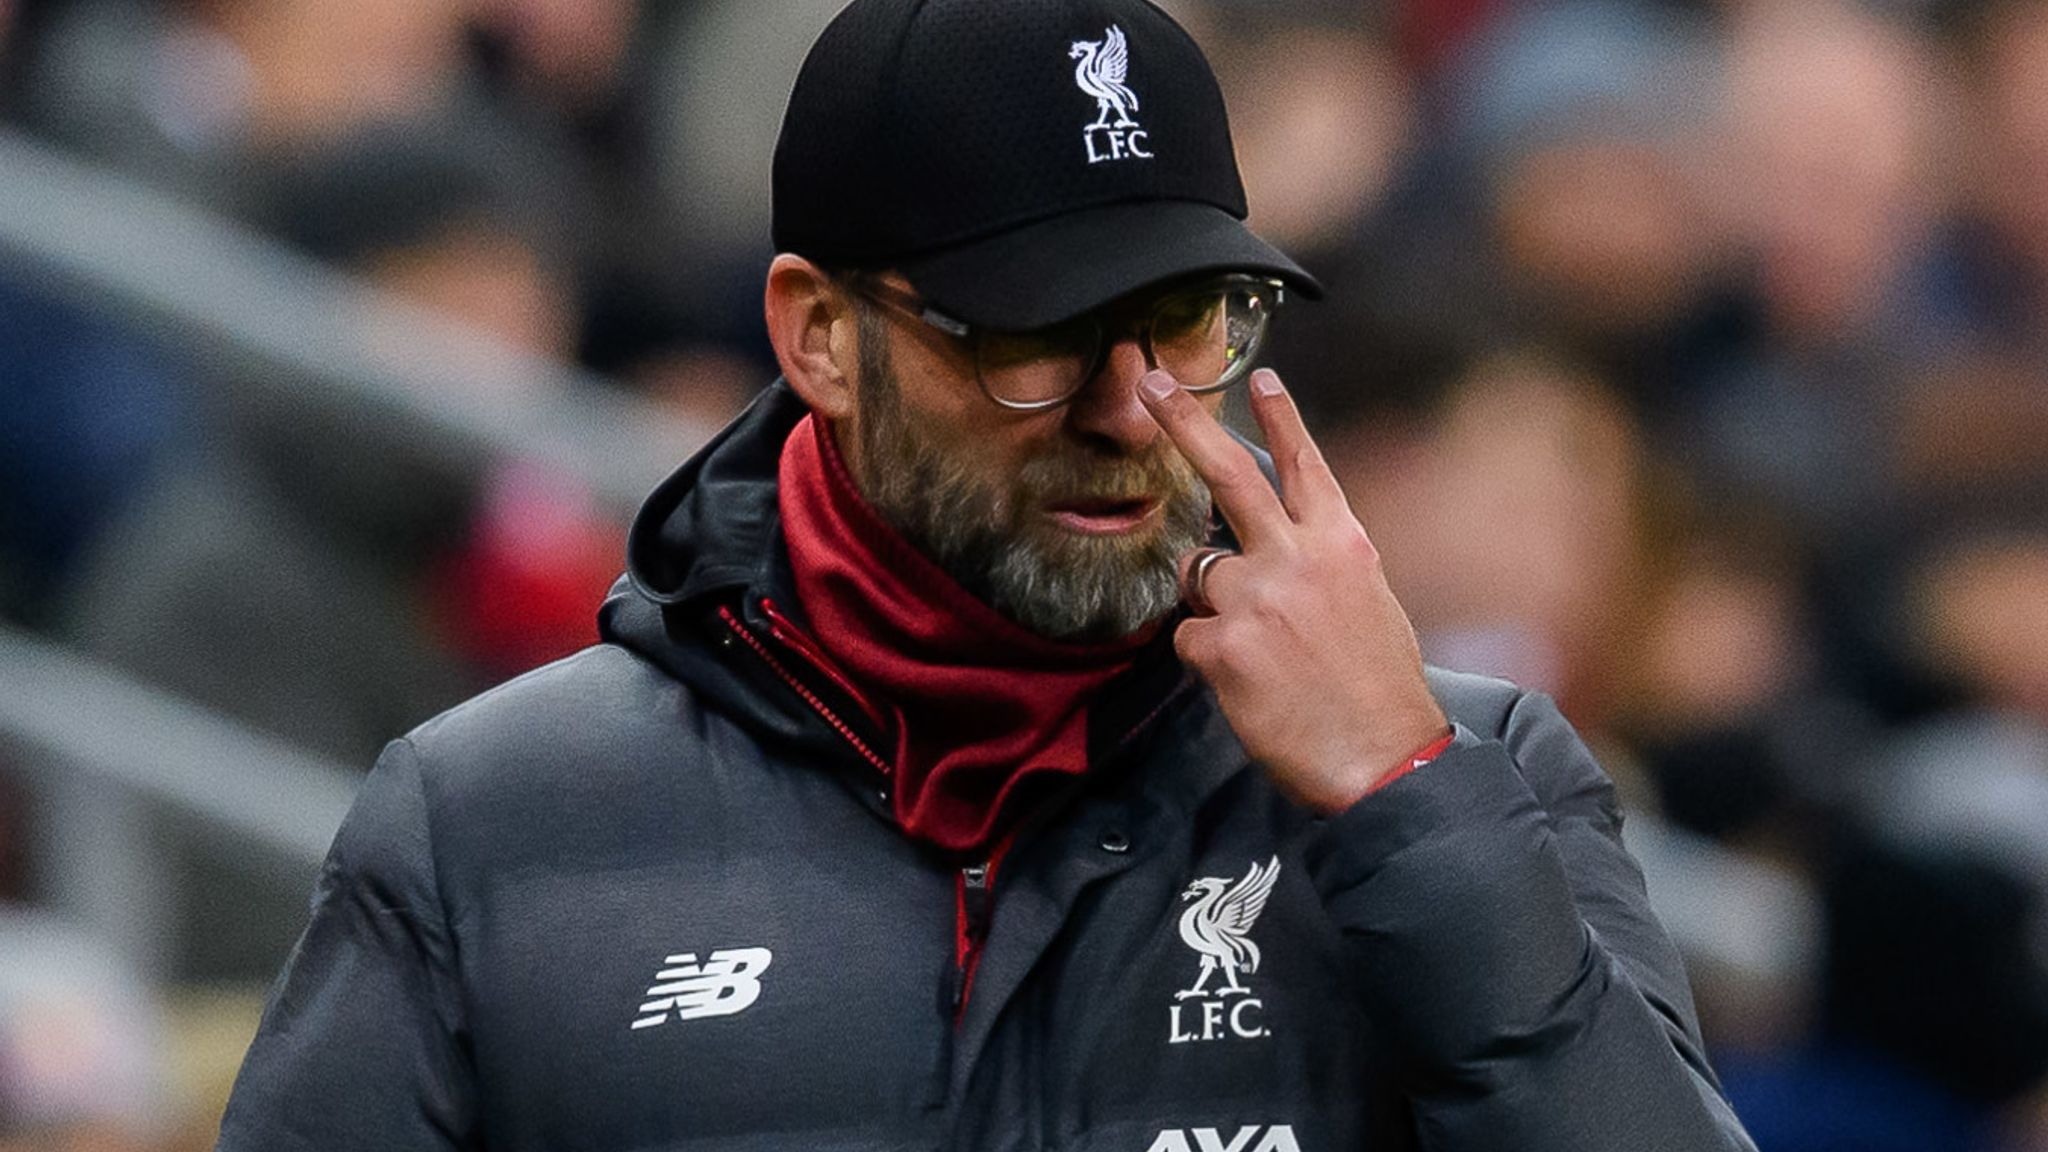 Jurgen Klopp's Being the Boss | Why I'm not on social media and don't wear a suit